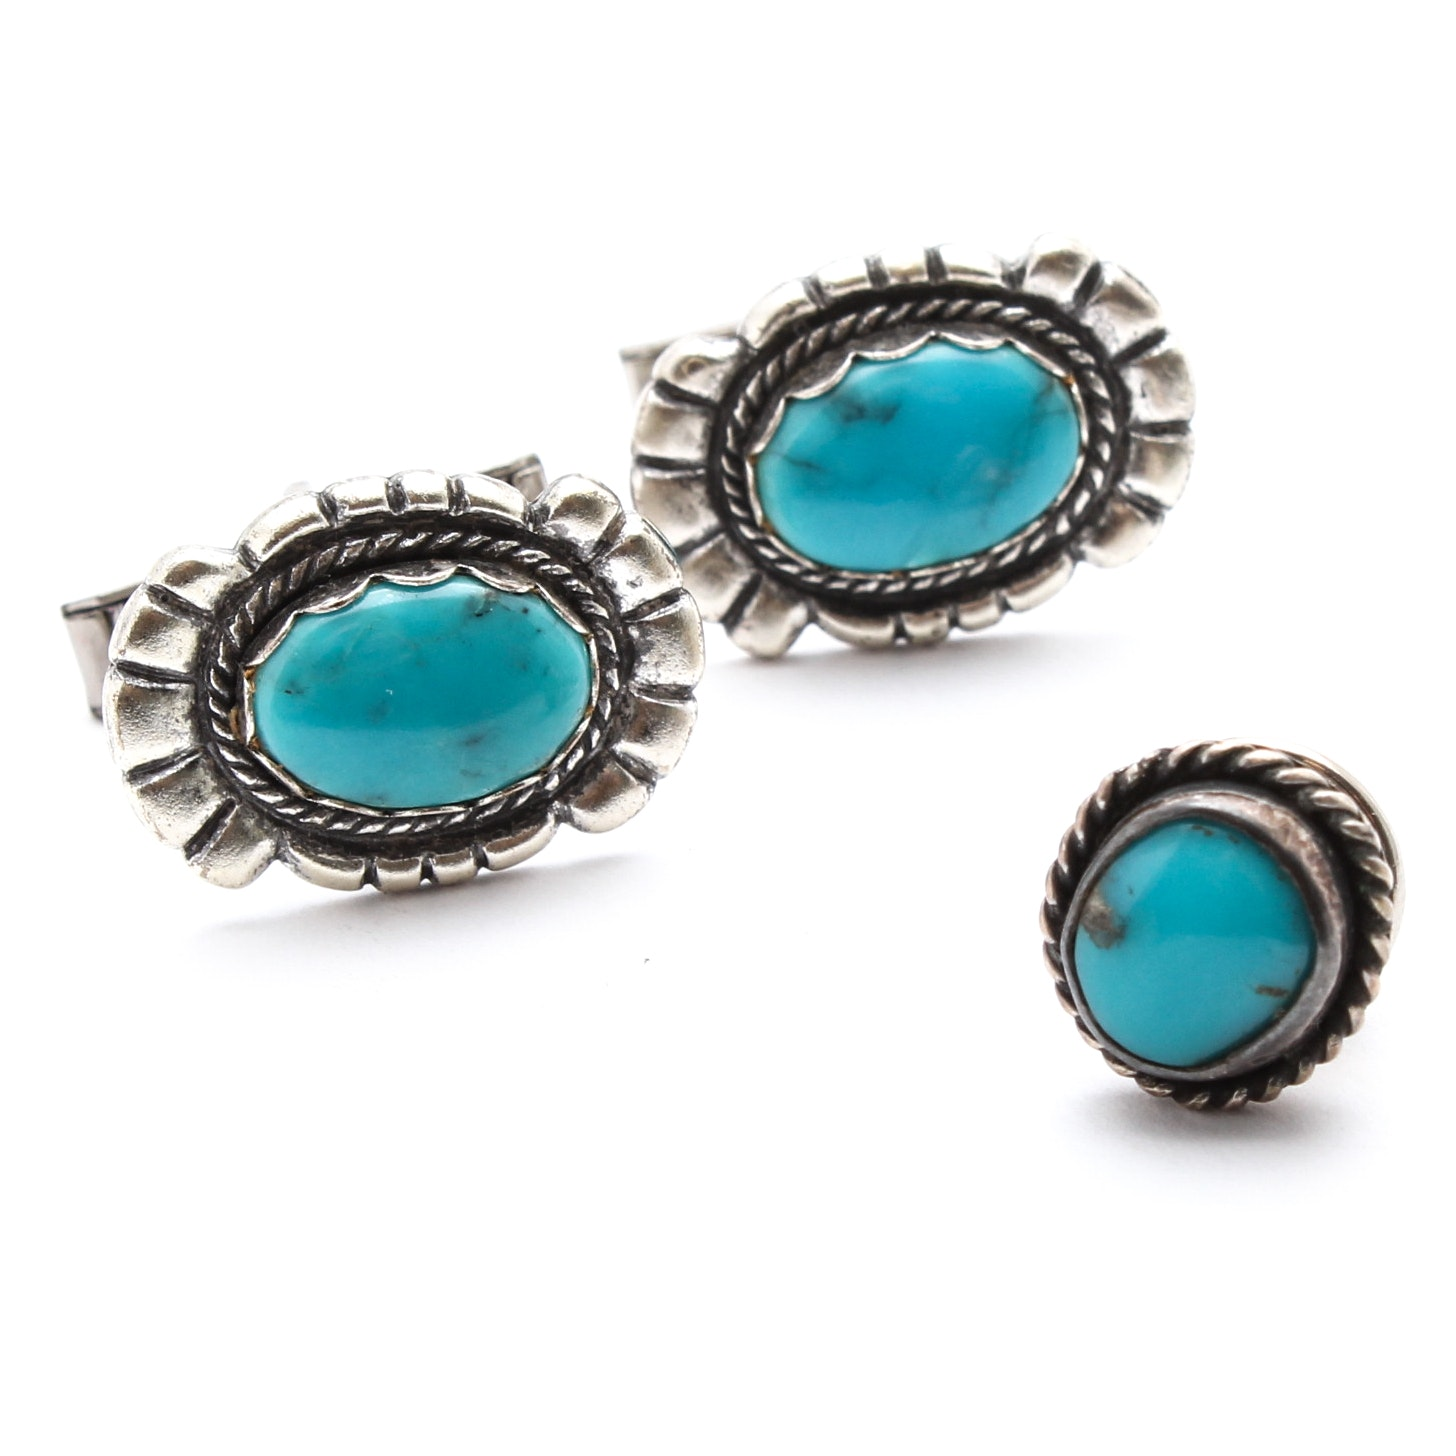 Sterling Silver and Dyed Turquoise Cufflinks and Tie Tack